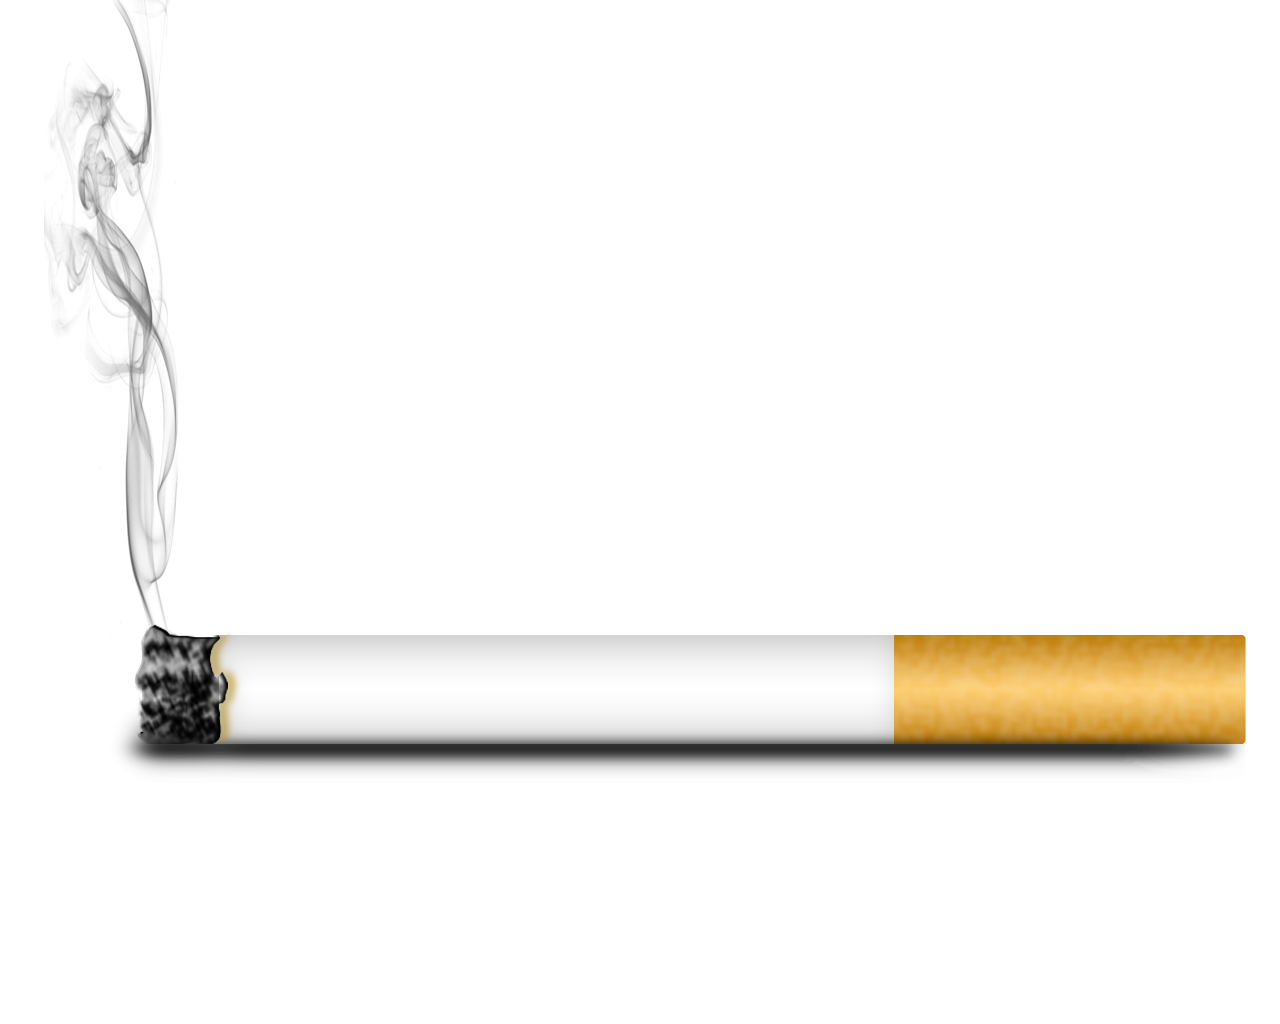 Cigarette png. Images free download pictures